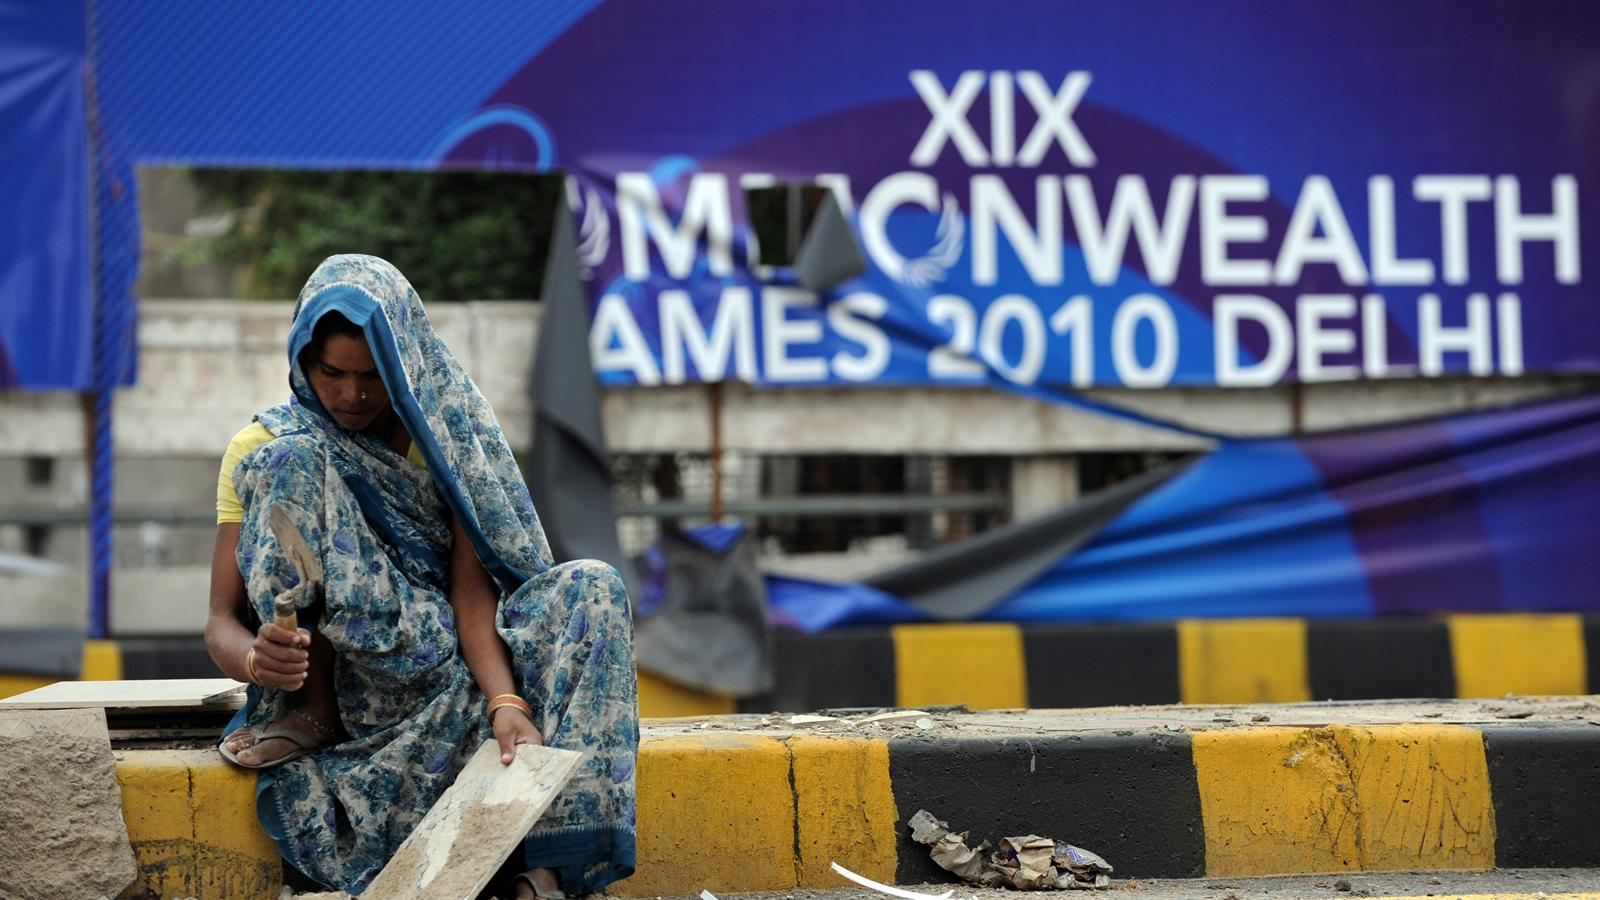 common wealth games in india